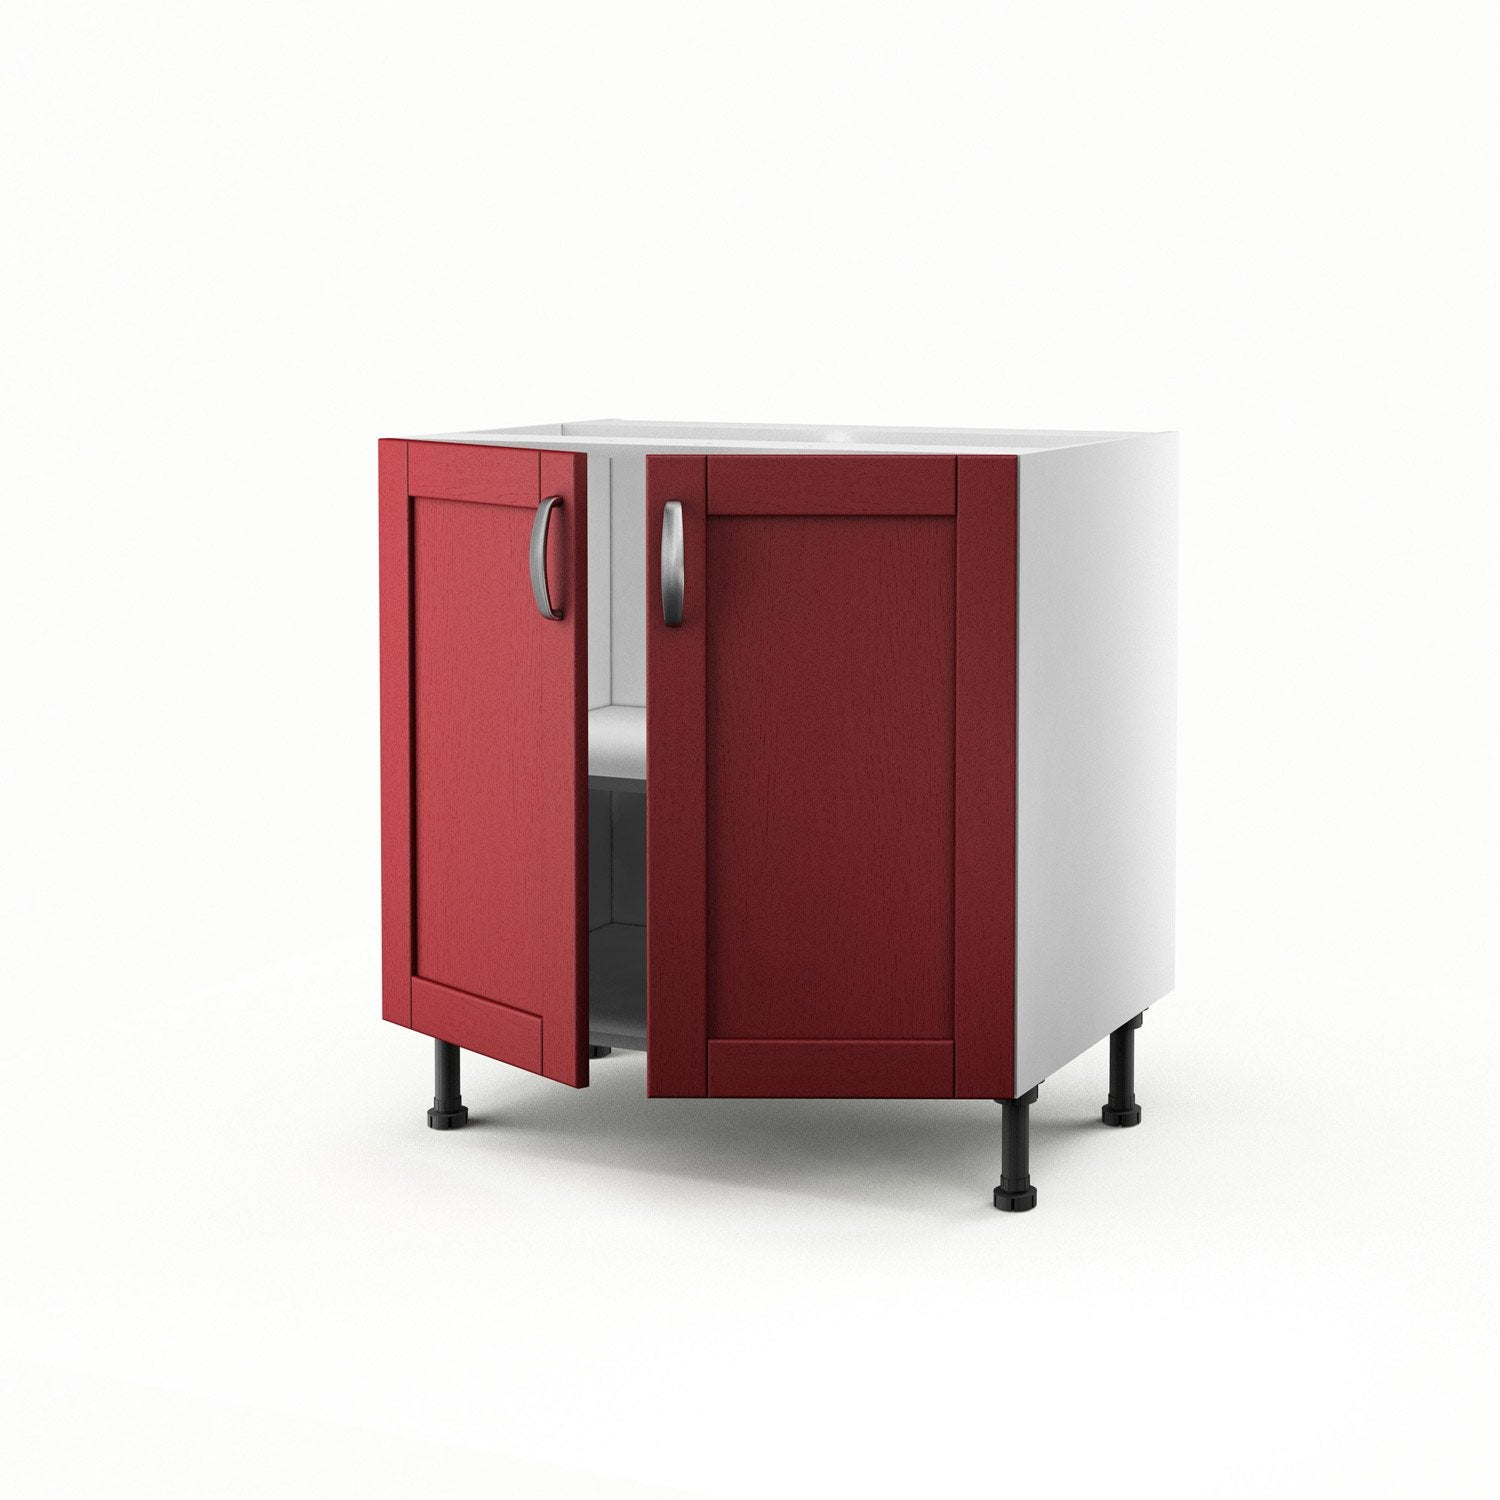 Meuble de cuisine bas rouge 2 portes rubis h70xl80xp56 cm for Bas de porte leroy merlin